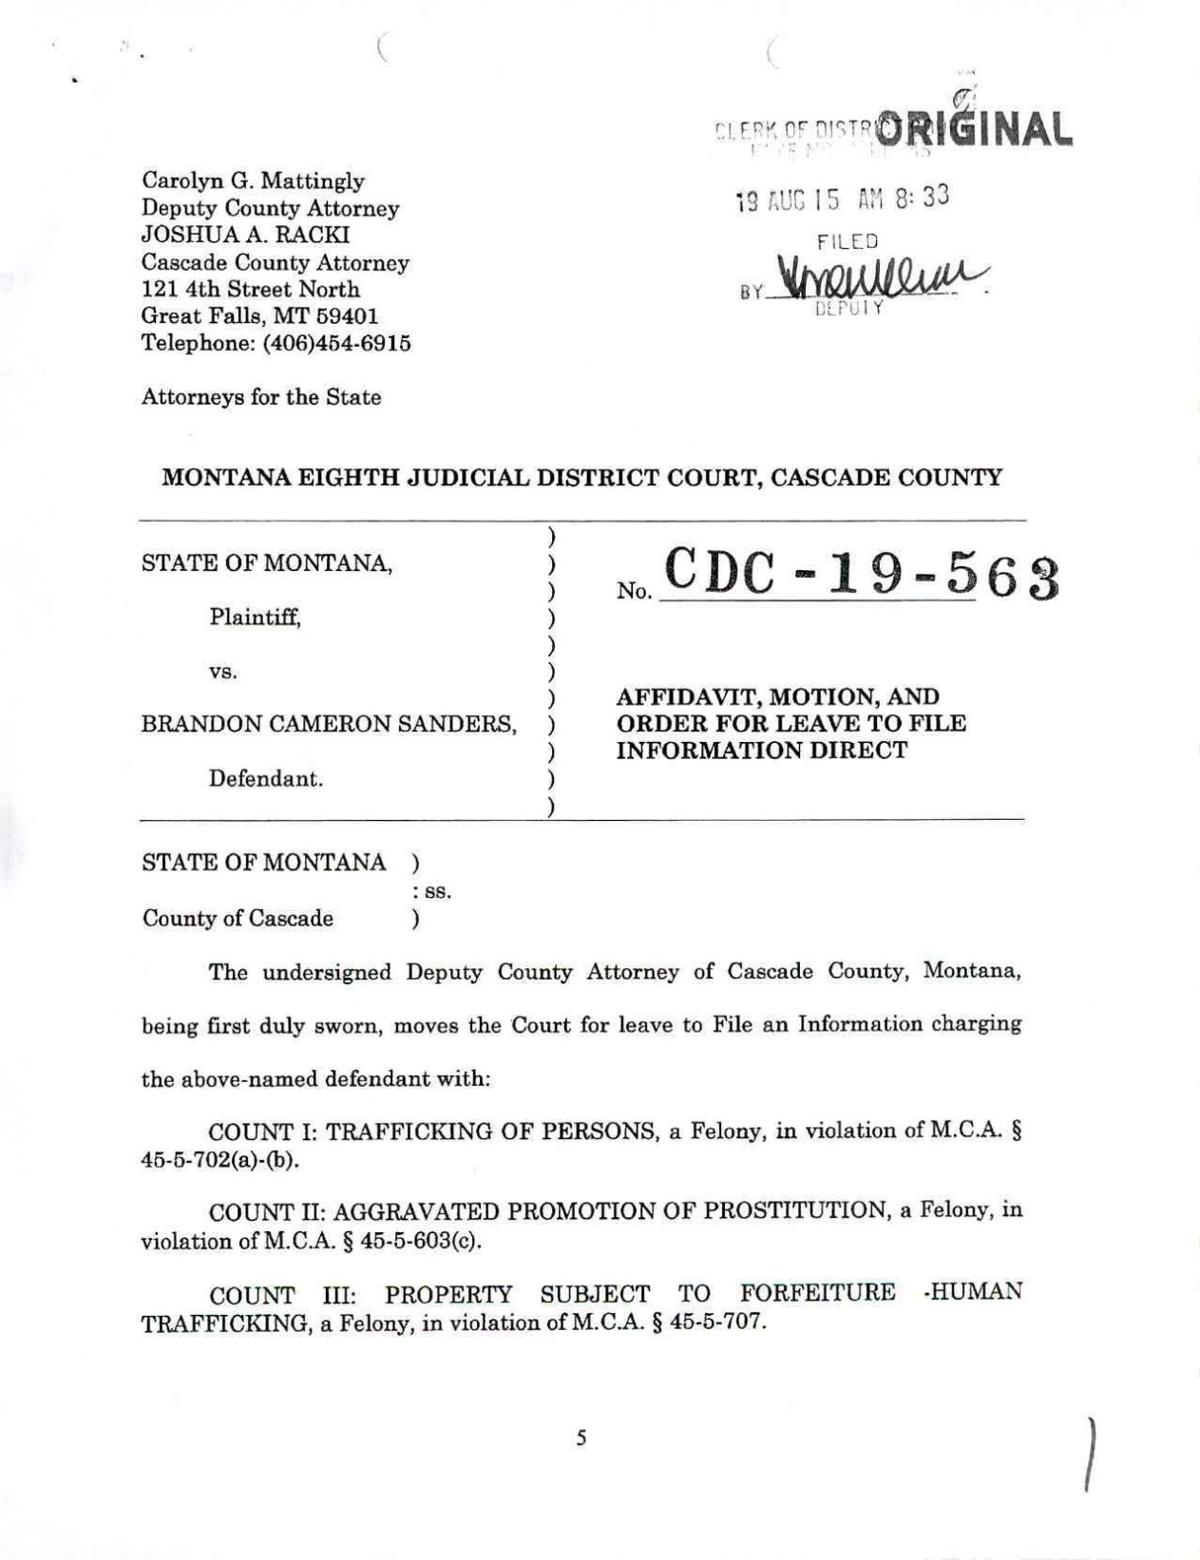 Court documents on Brandon Sanders and the sex trafficking incident